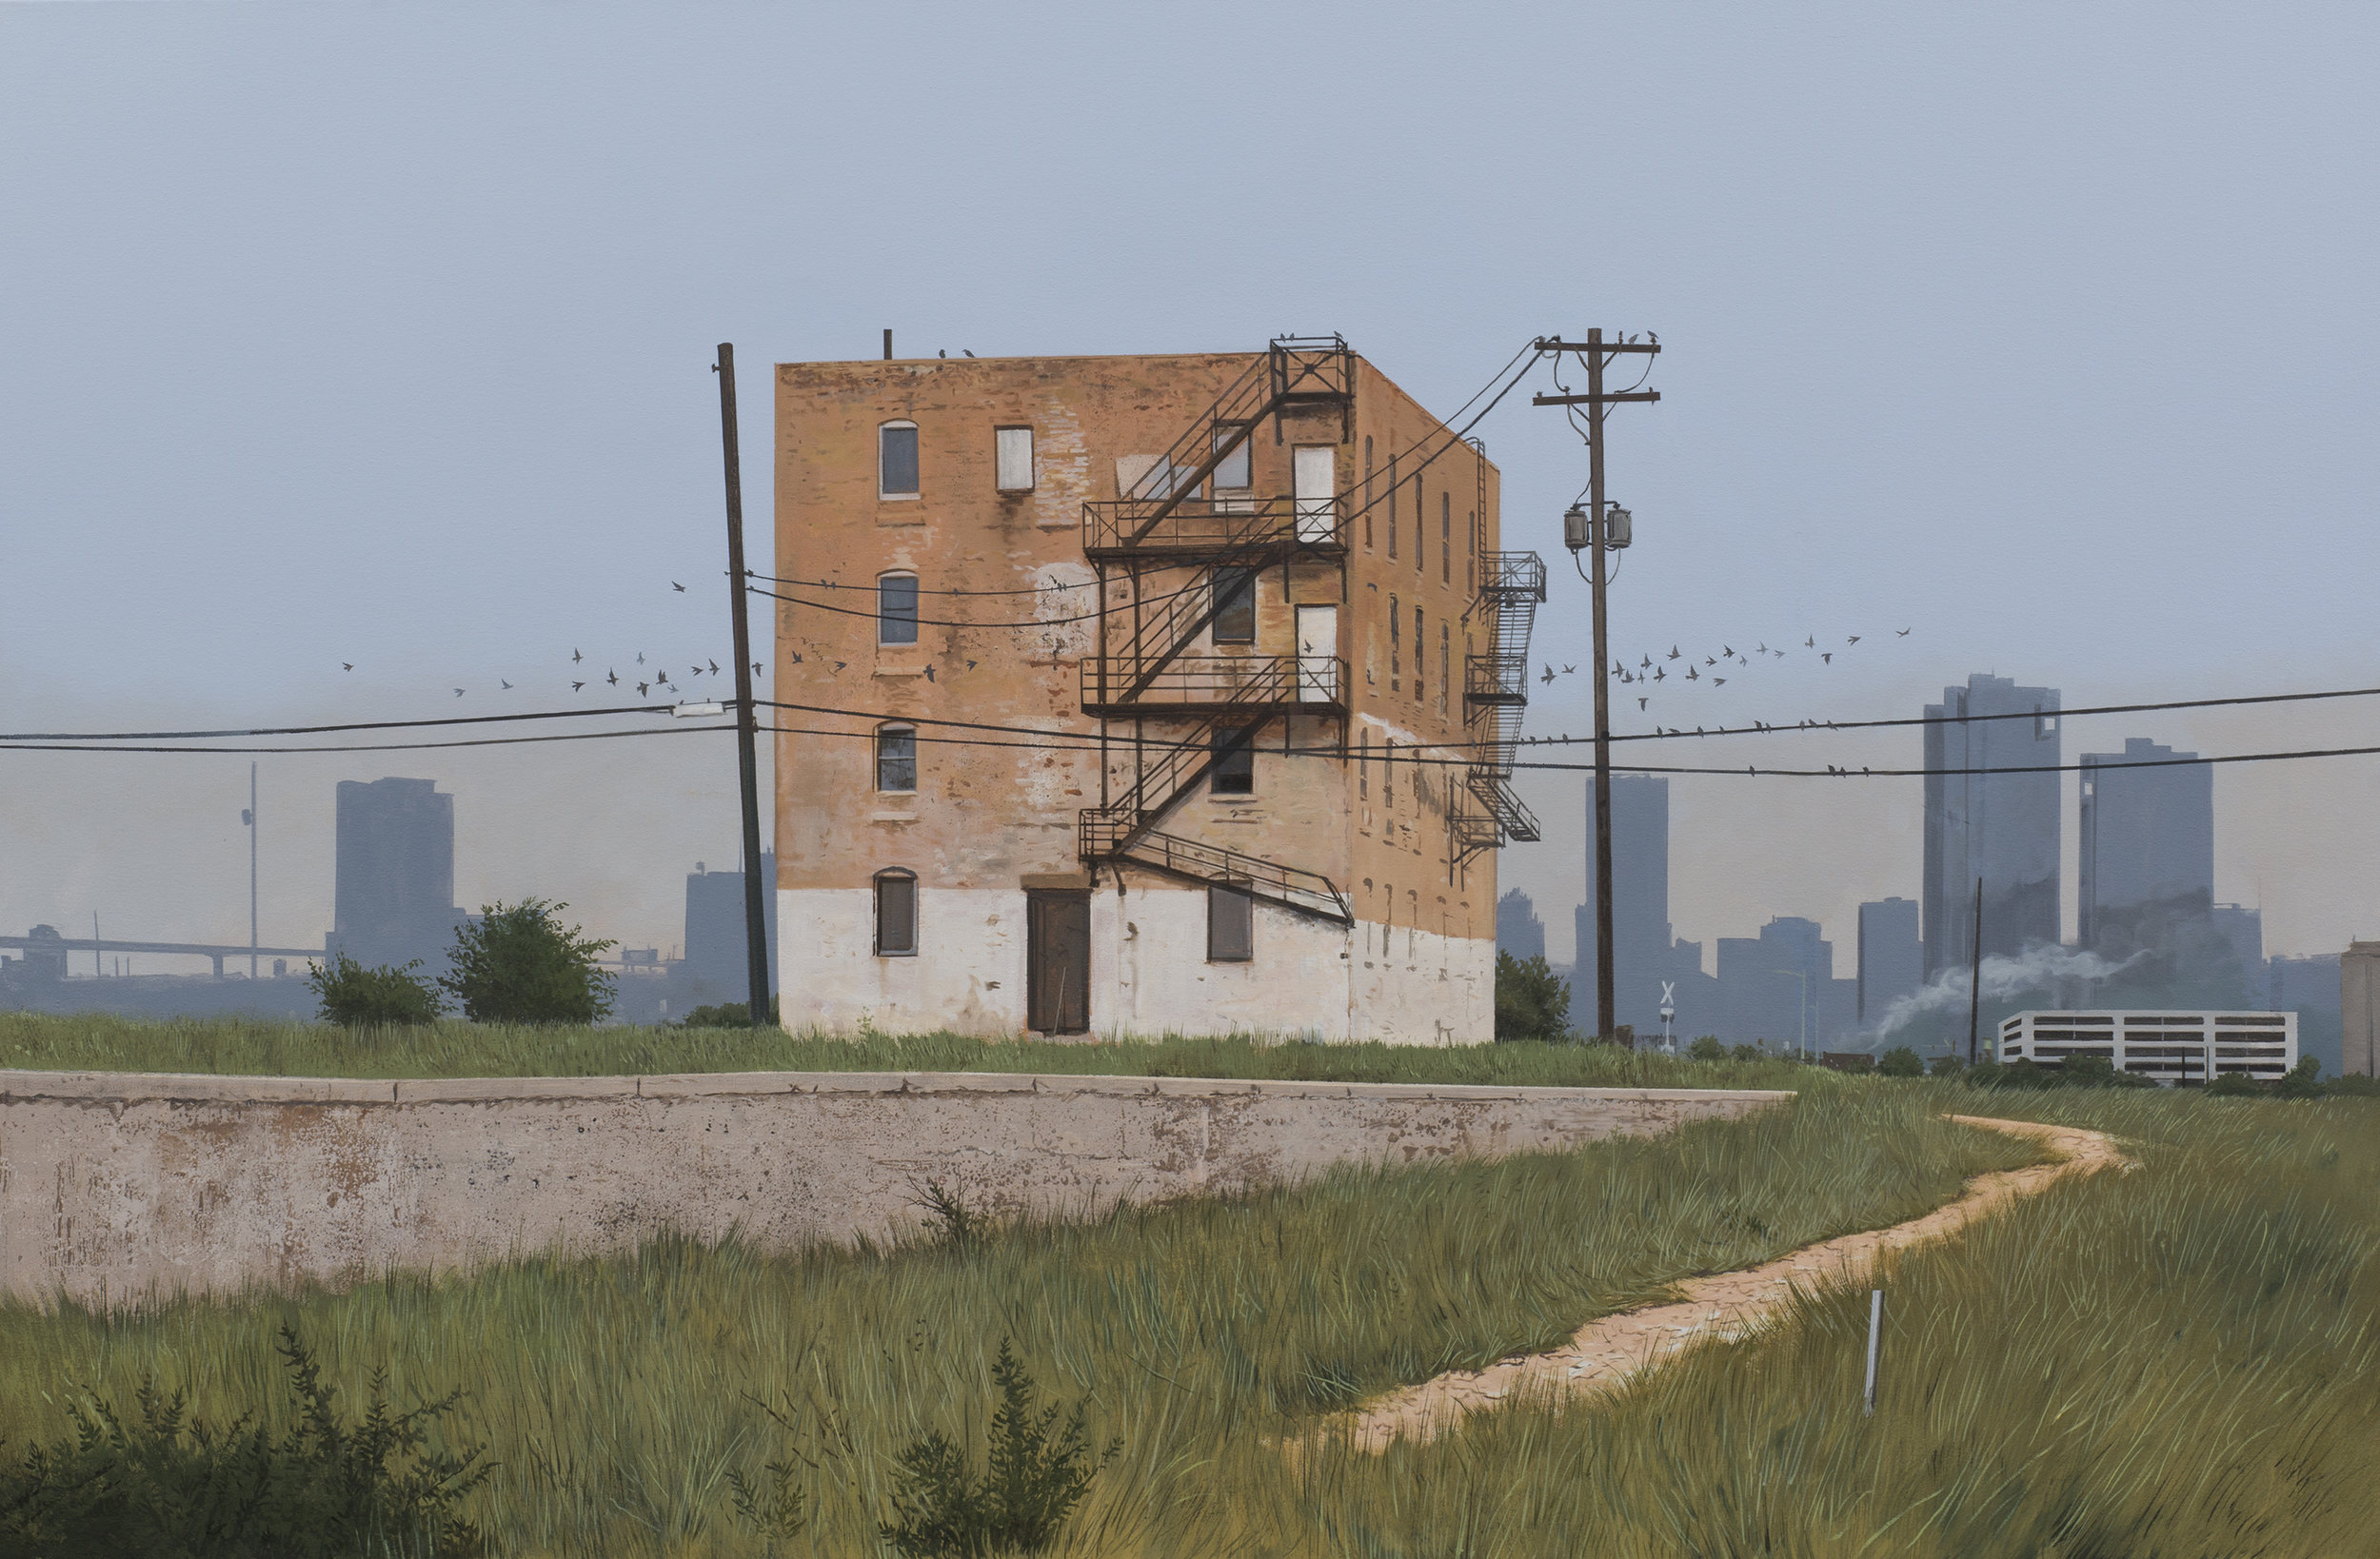 """Daniel Blagg, The Edge of Town,  2017, oil on canvas, 38 x 58"""". Contact Artspace111 to purchase."""